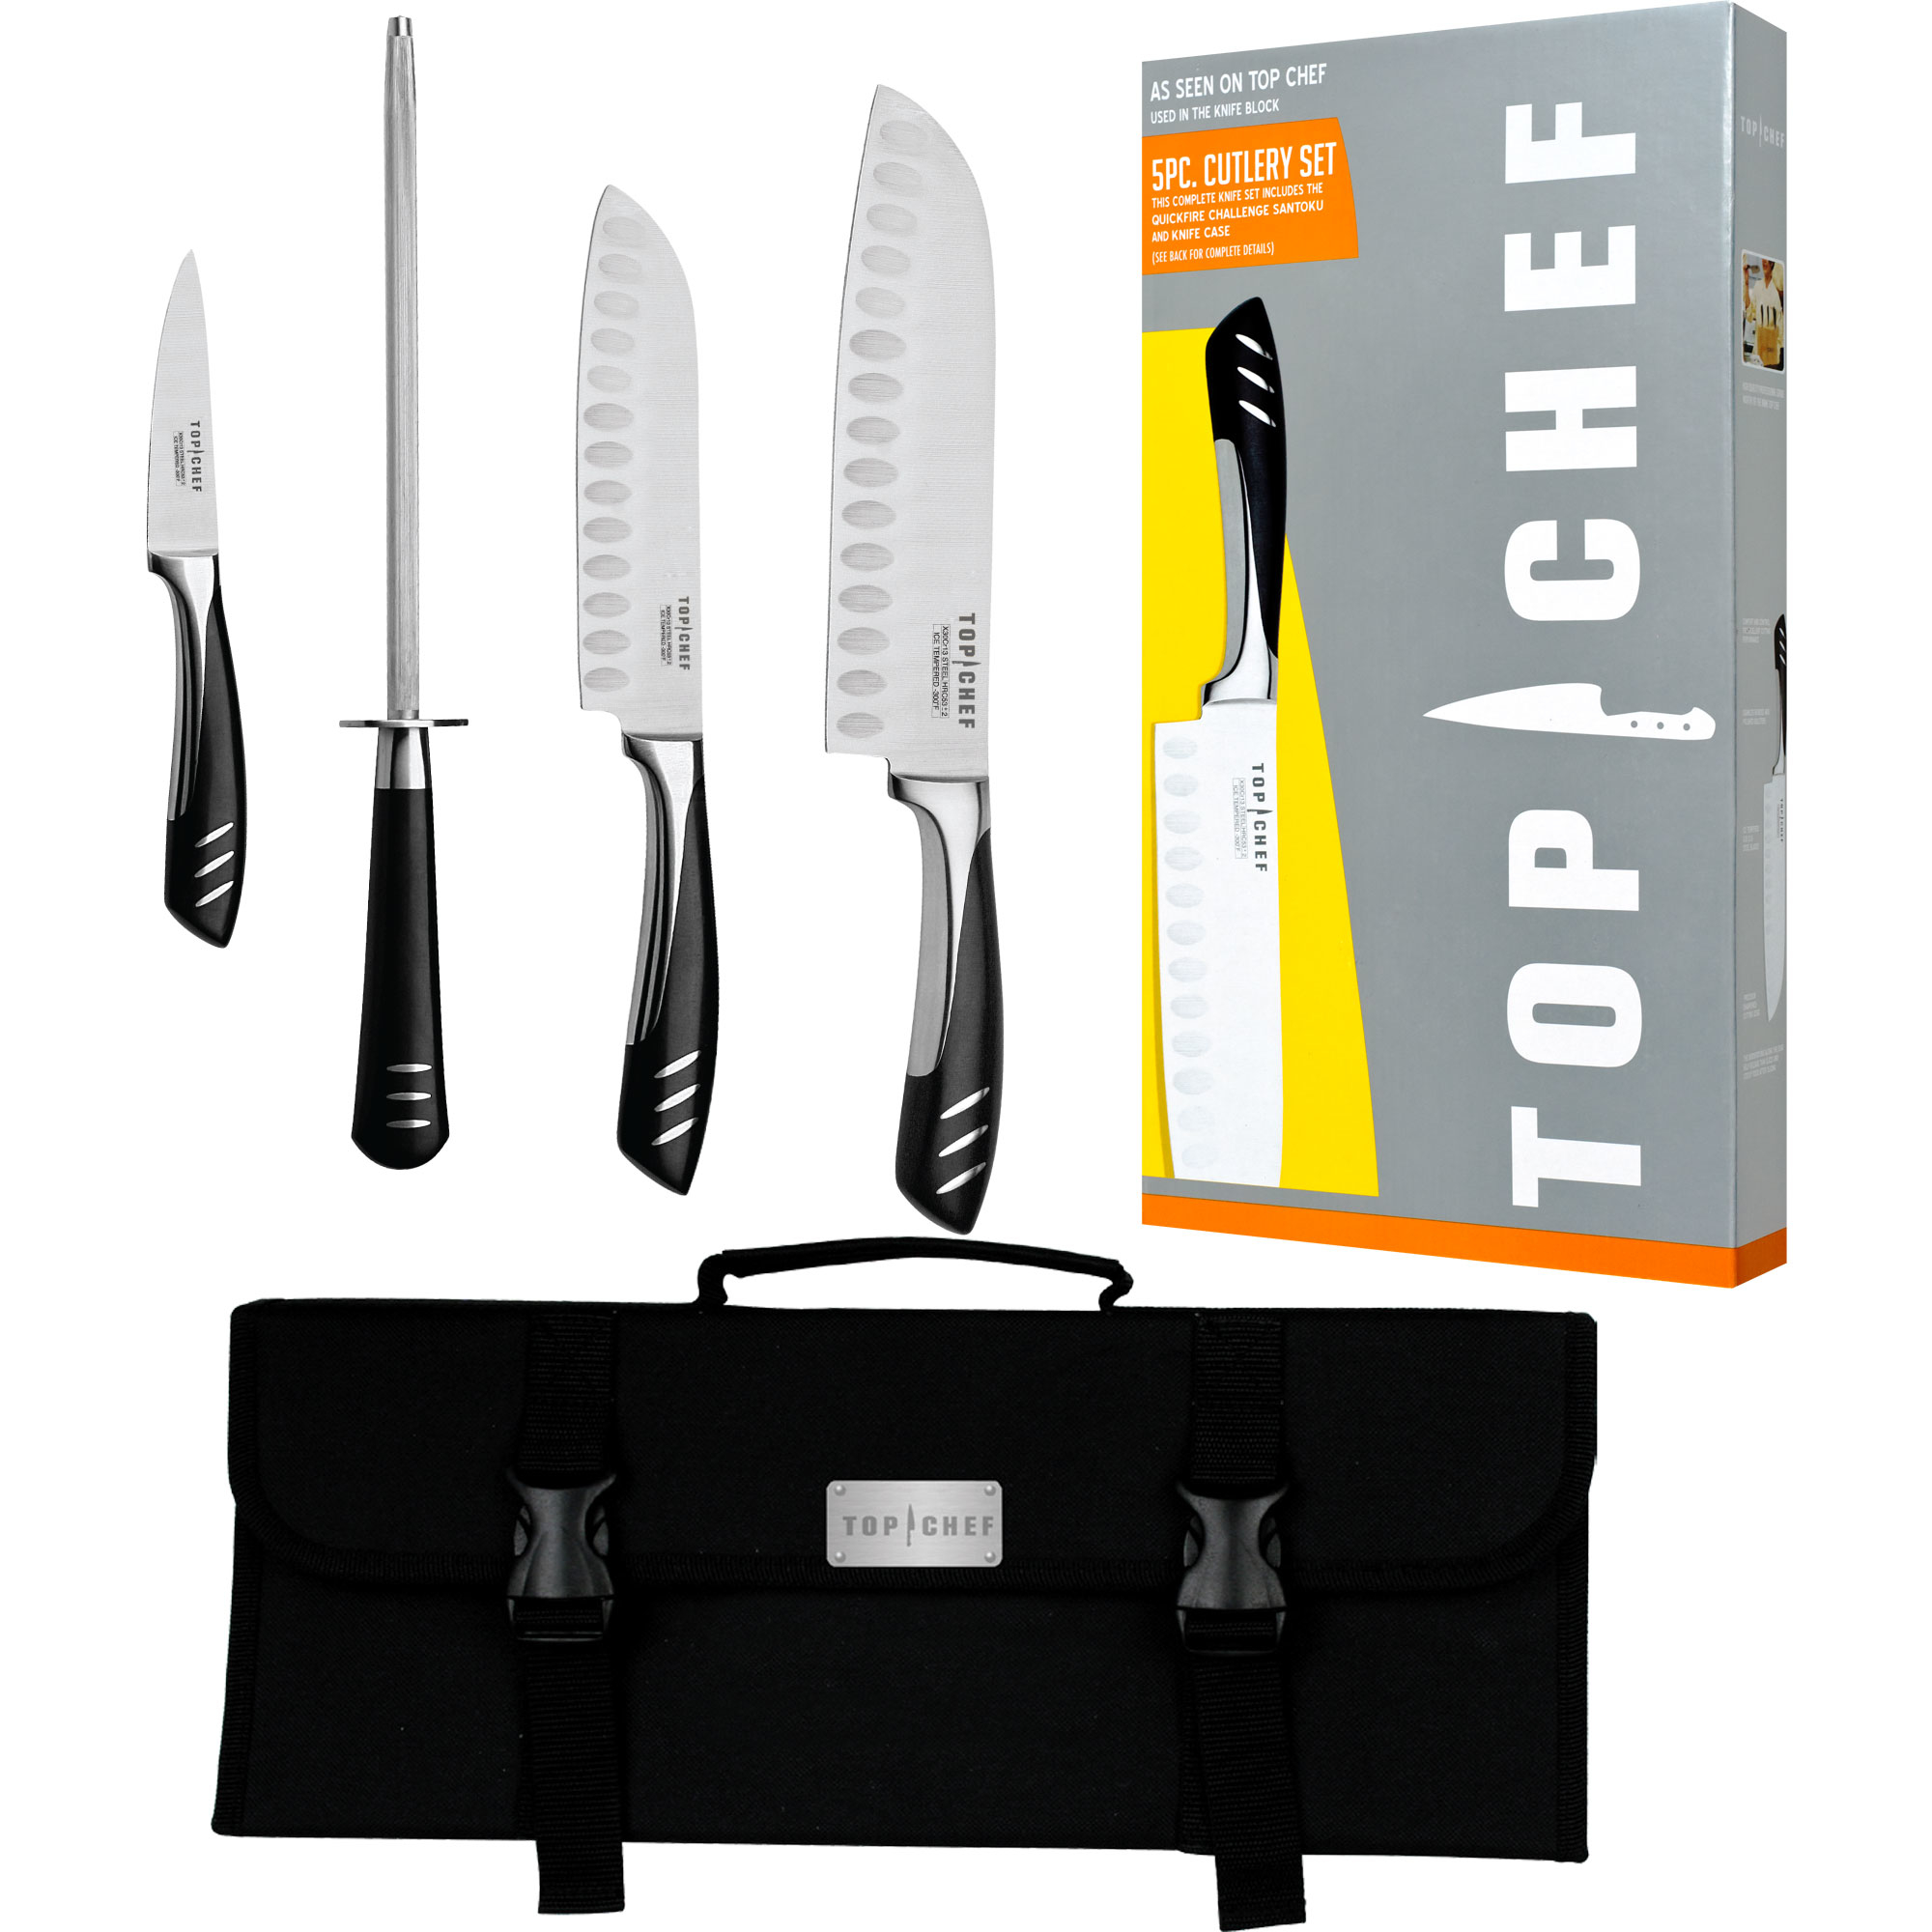 Top Chef® 5 Piece Stainless Steel Knife Set - Portable